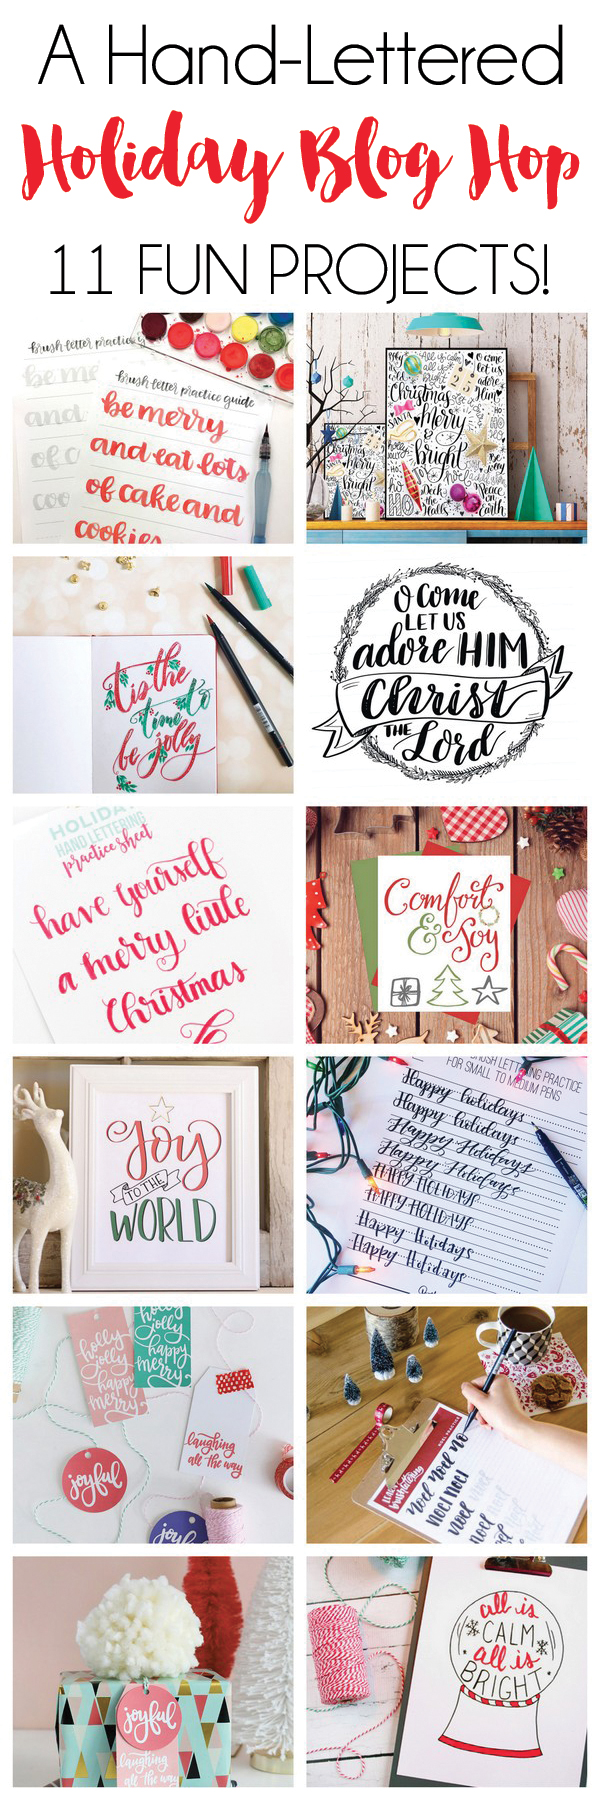 A hand lettered holiday blog hop with 11 hand lettered printables, tutorials and practice sheets.